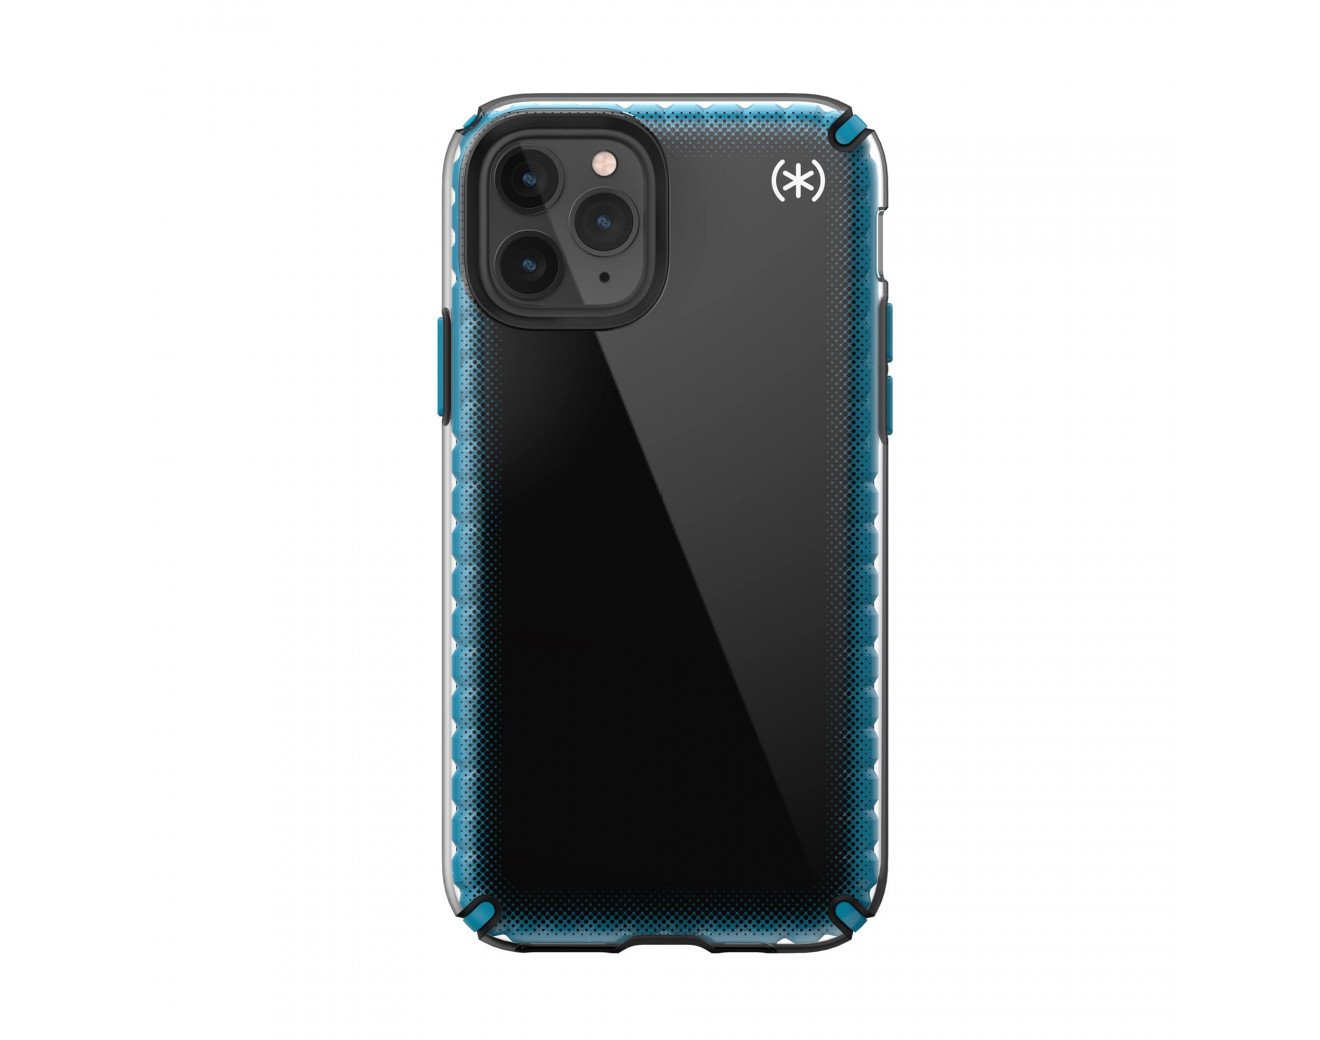 Калъф Speck Presidio2 Armor Cloud iPhone 11 Pro Cases - Black